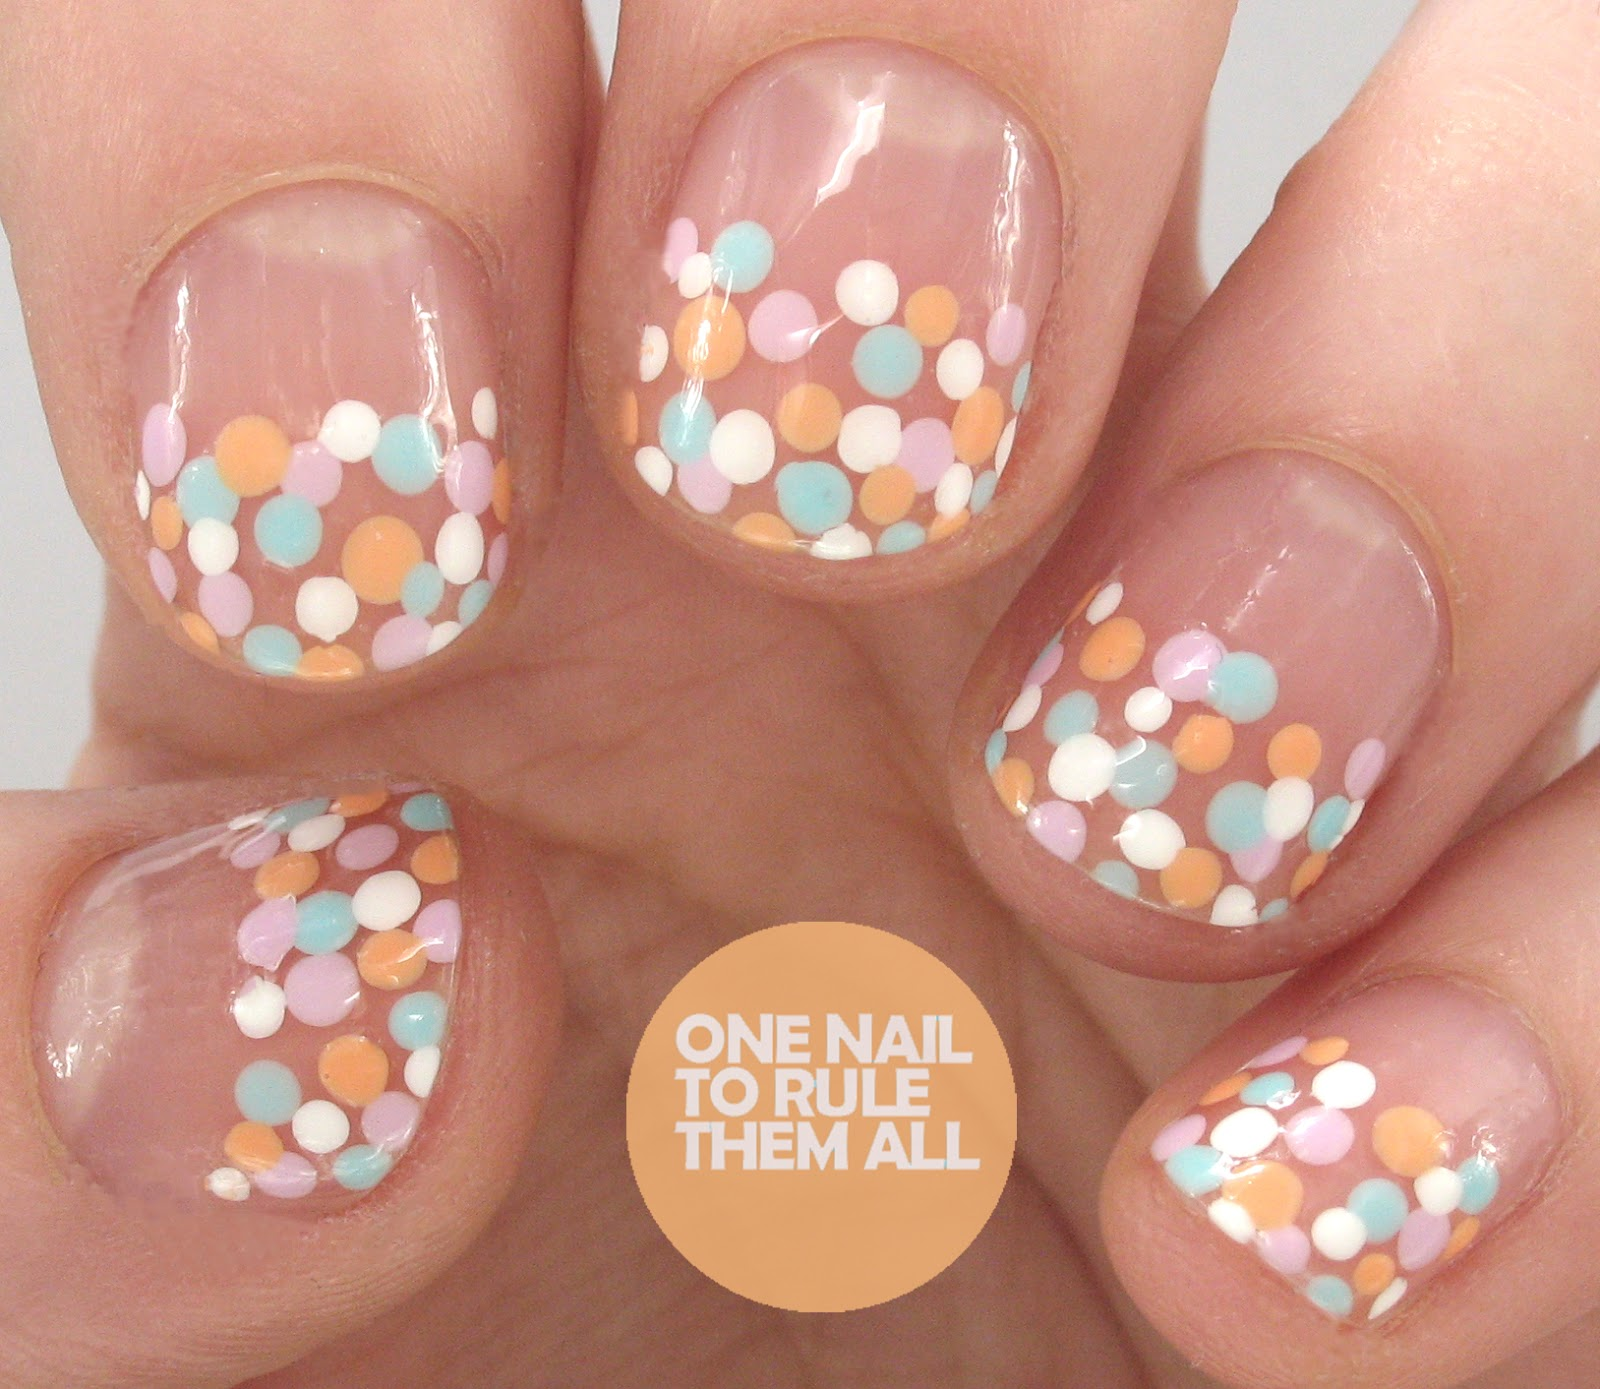 One nail to rule them all mani swap with dahlia nails prinsesfo Image collections